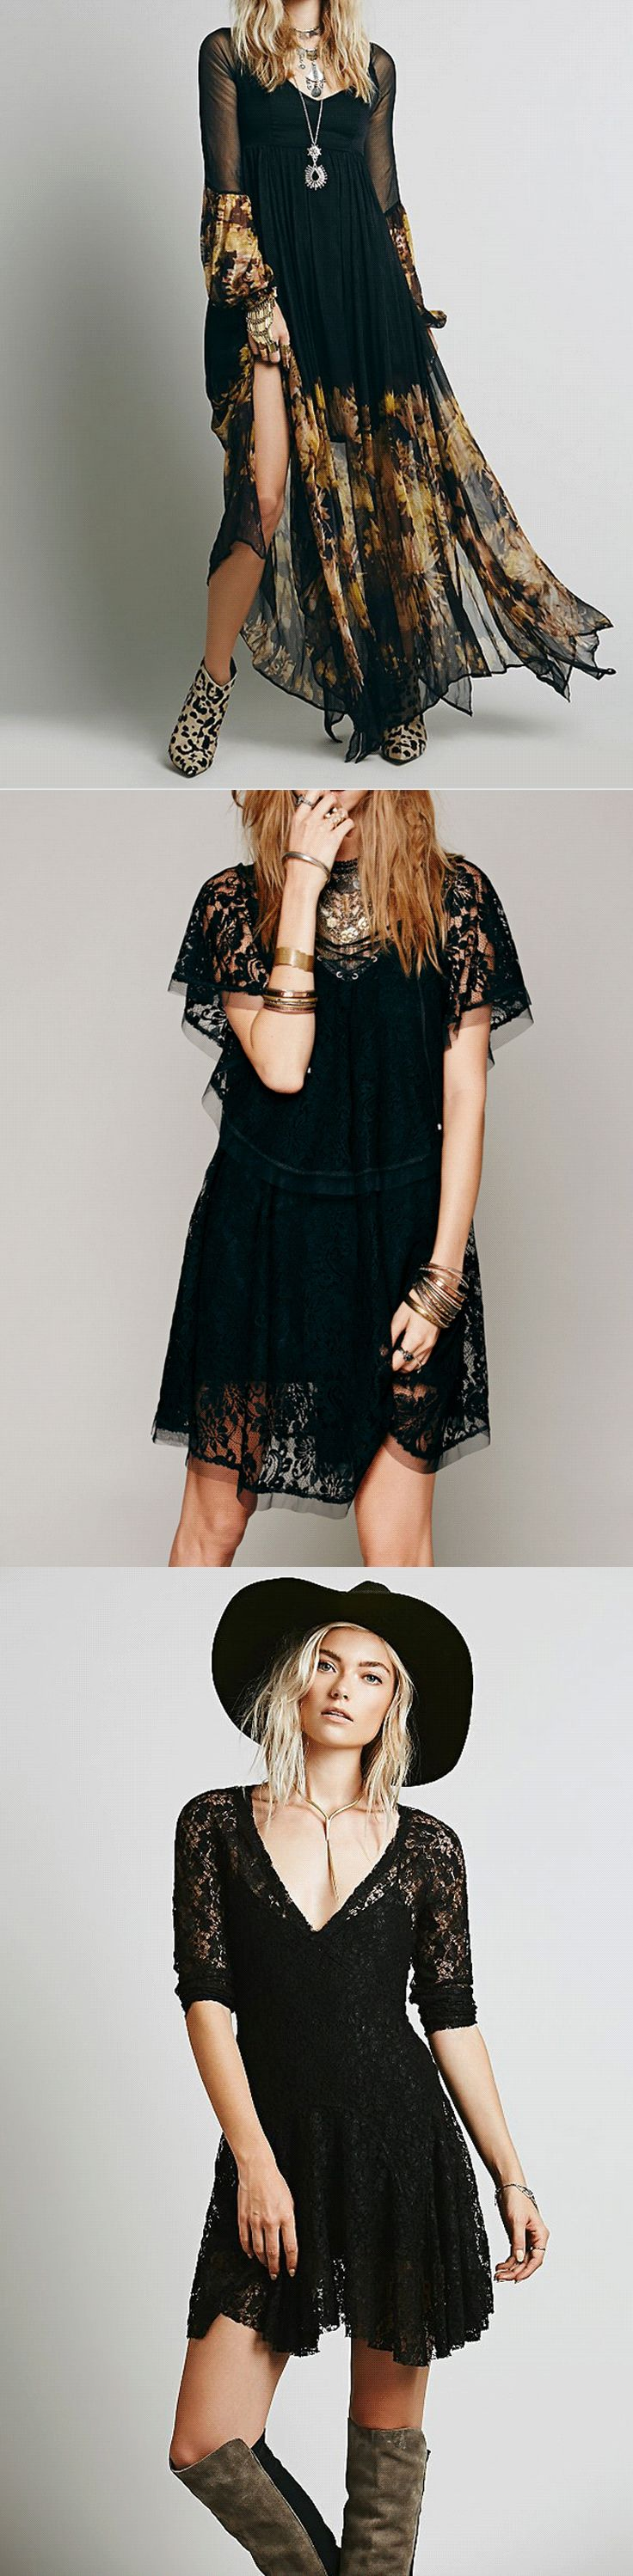 Shop black goth witchy gypsy dresses at RebelsMarket!